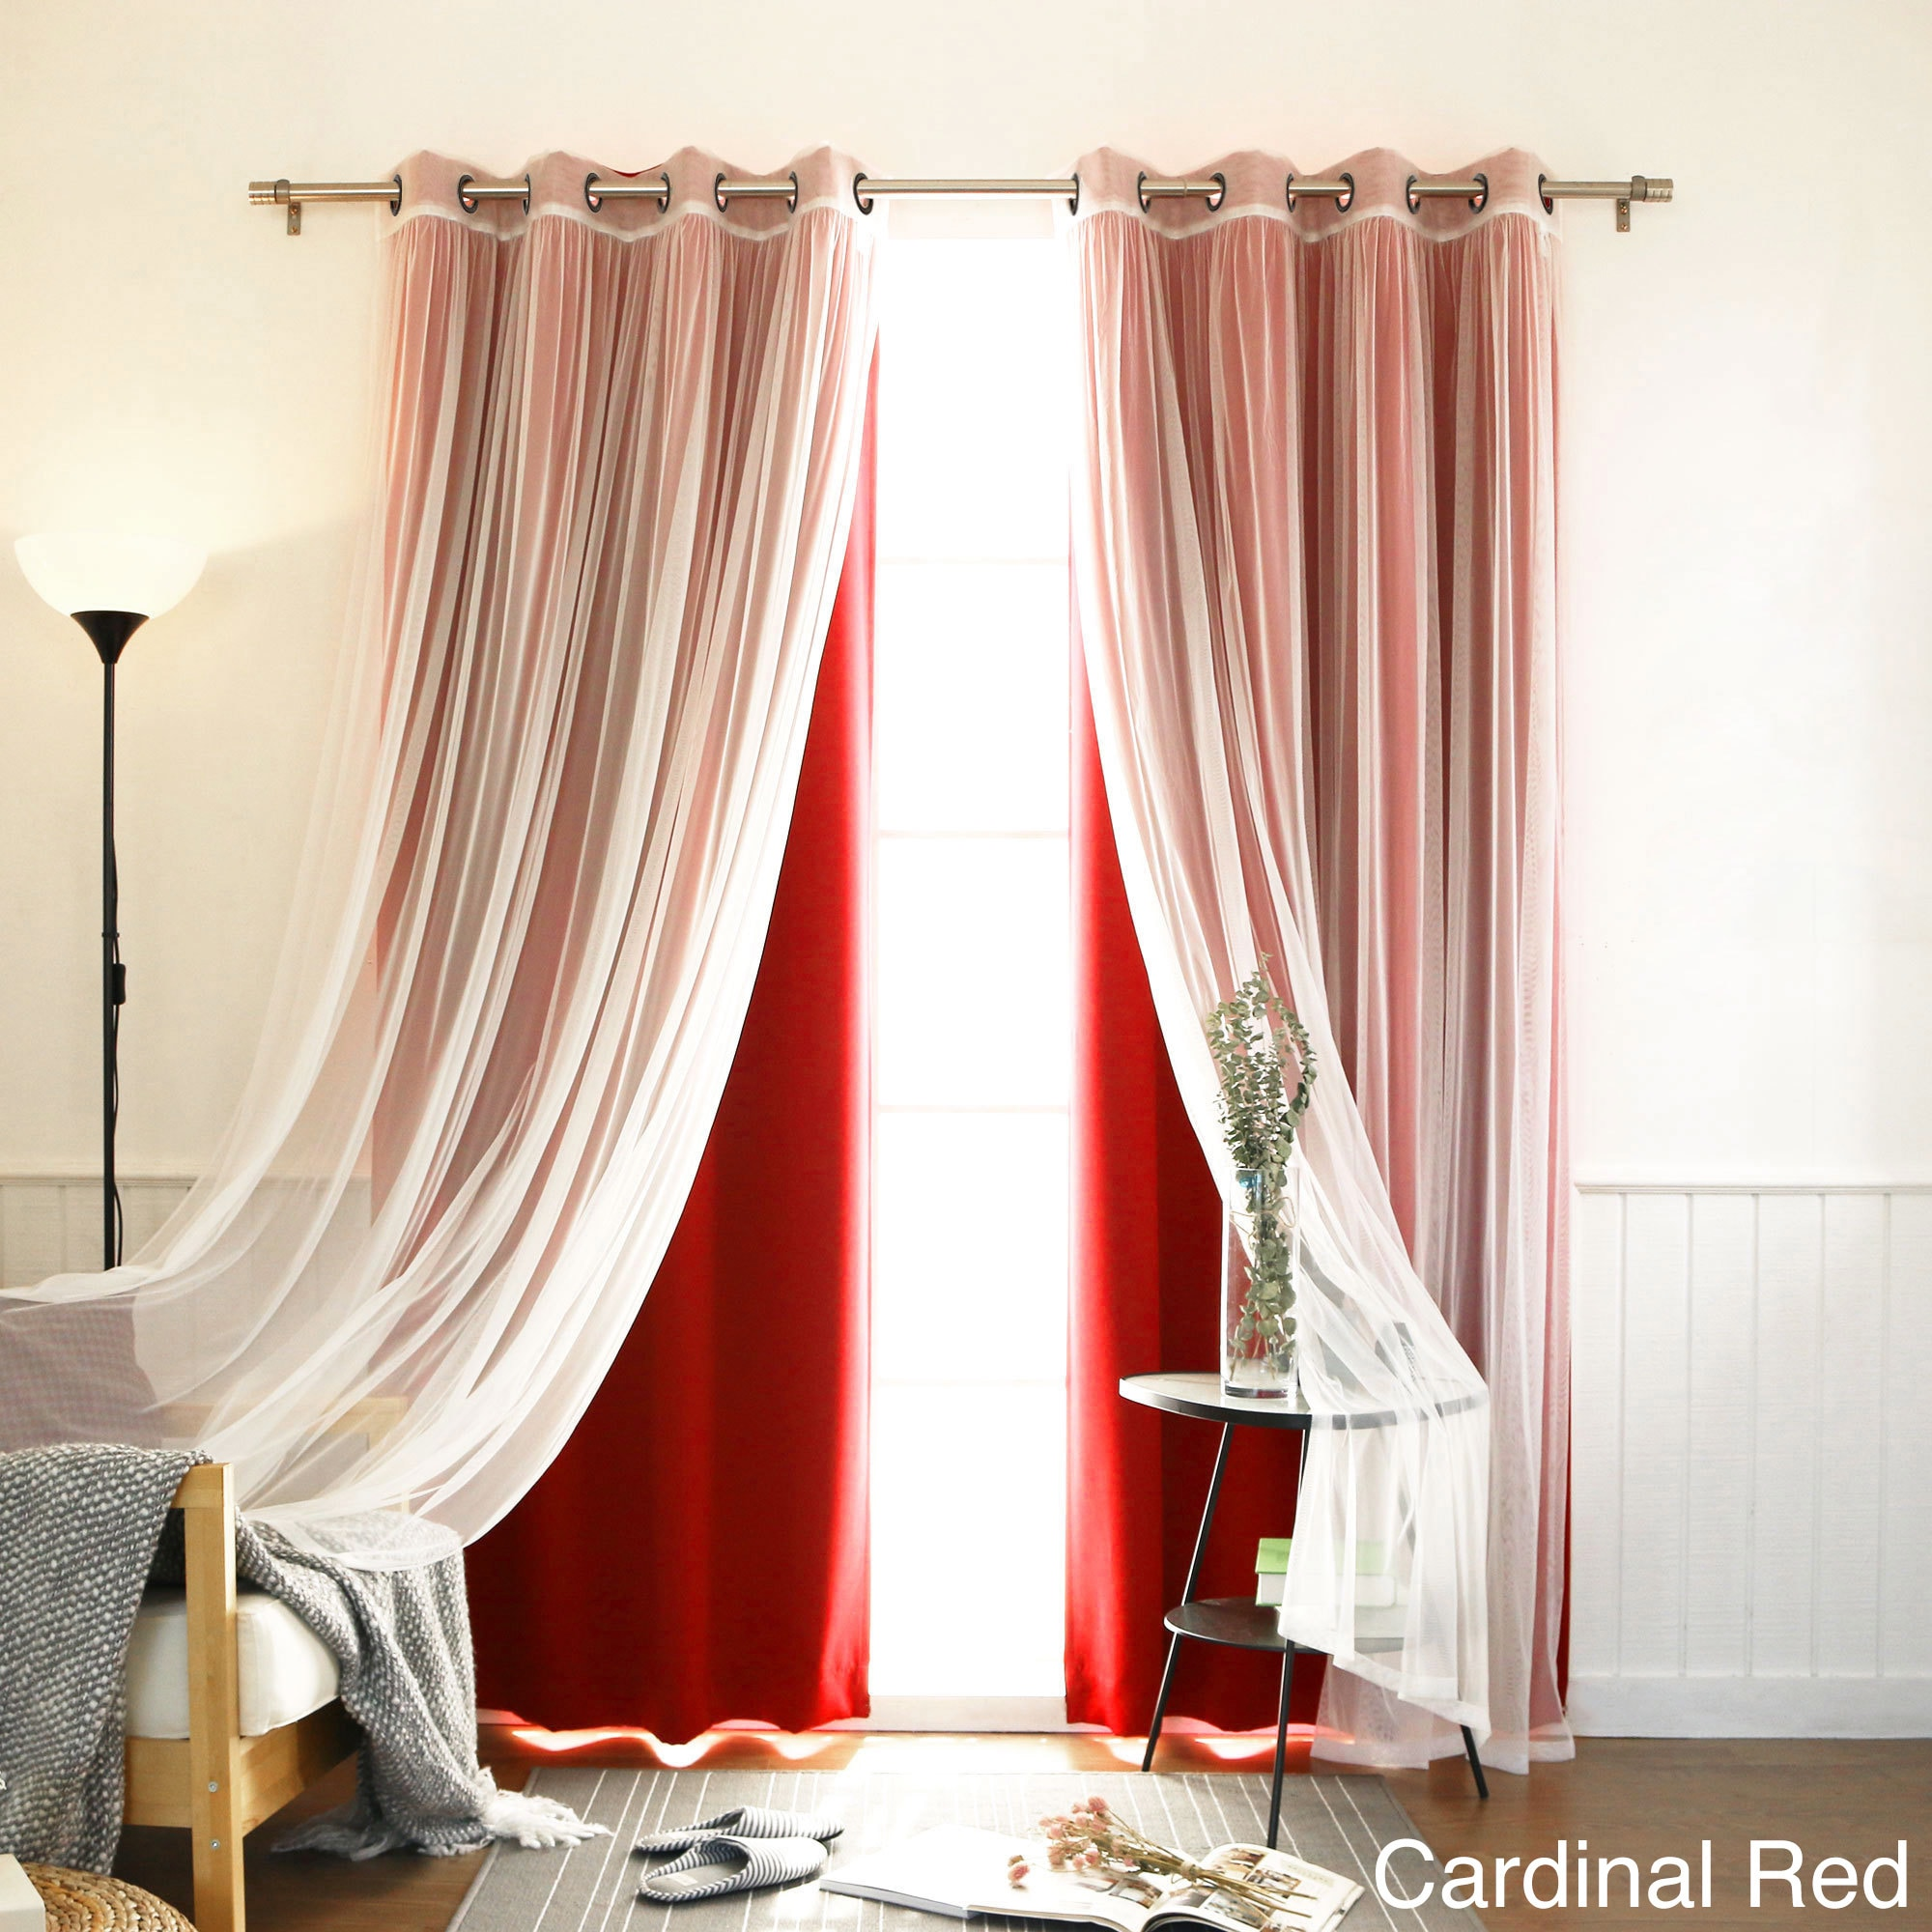 4 Piece Sheer Blackout Grommet Top Curtain Panels (3 Options Available)